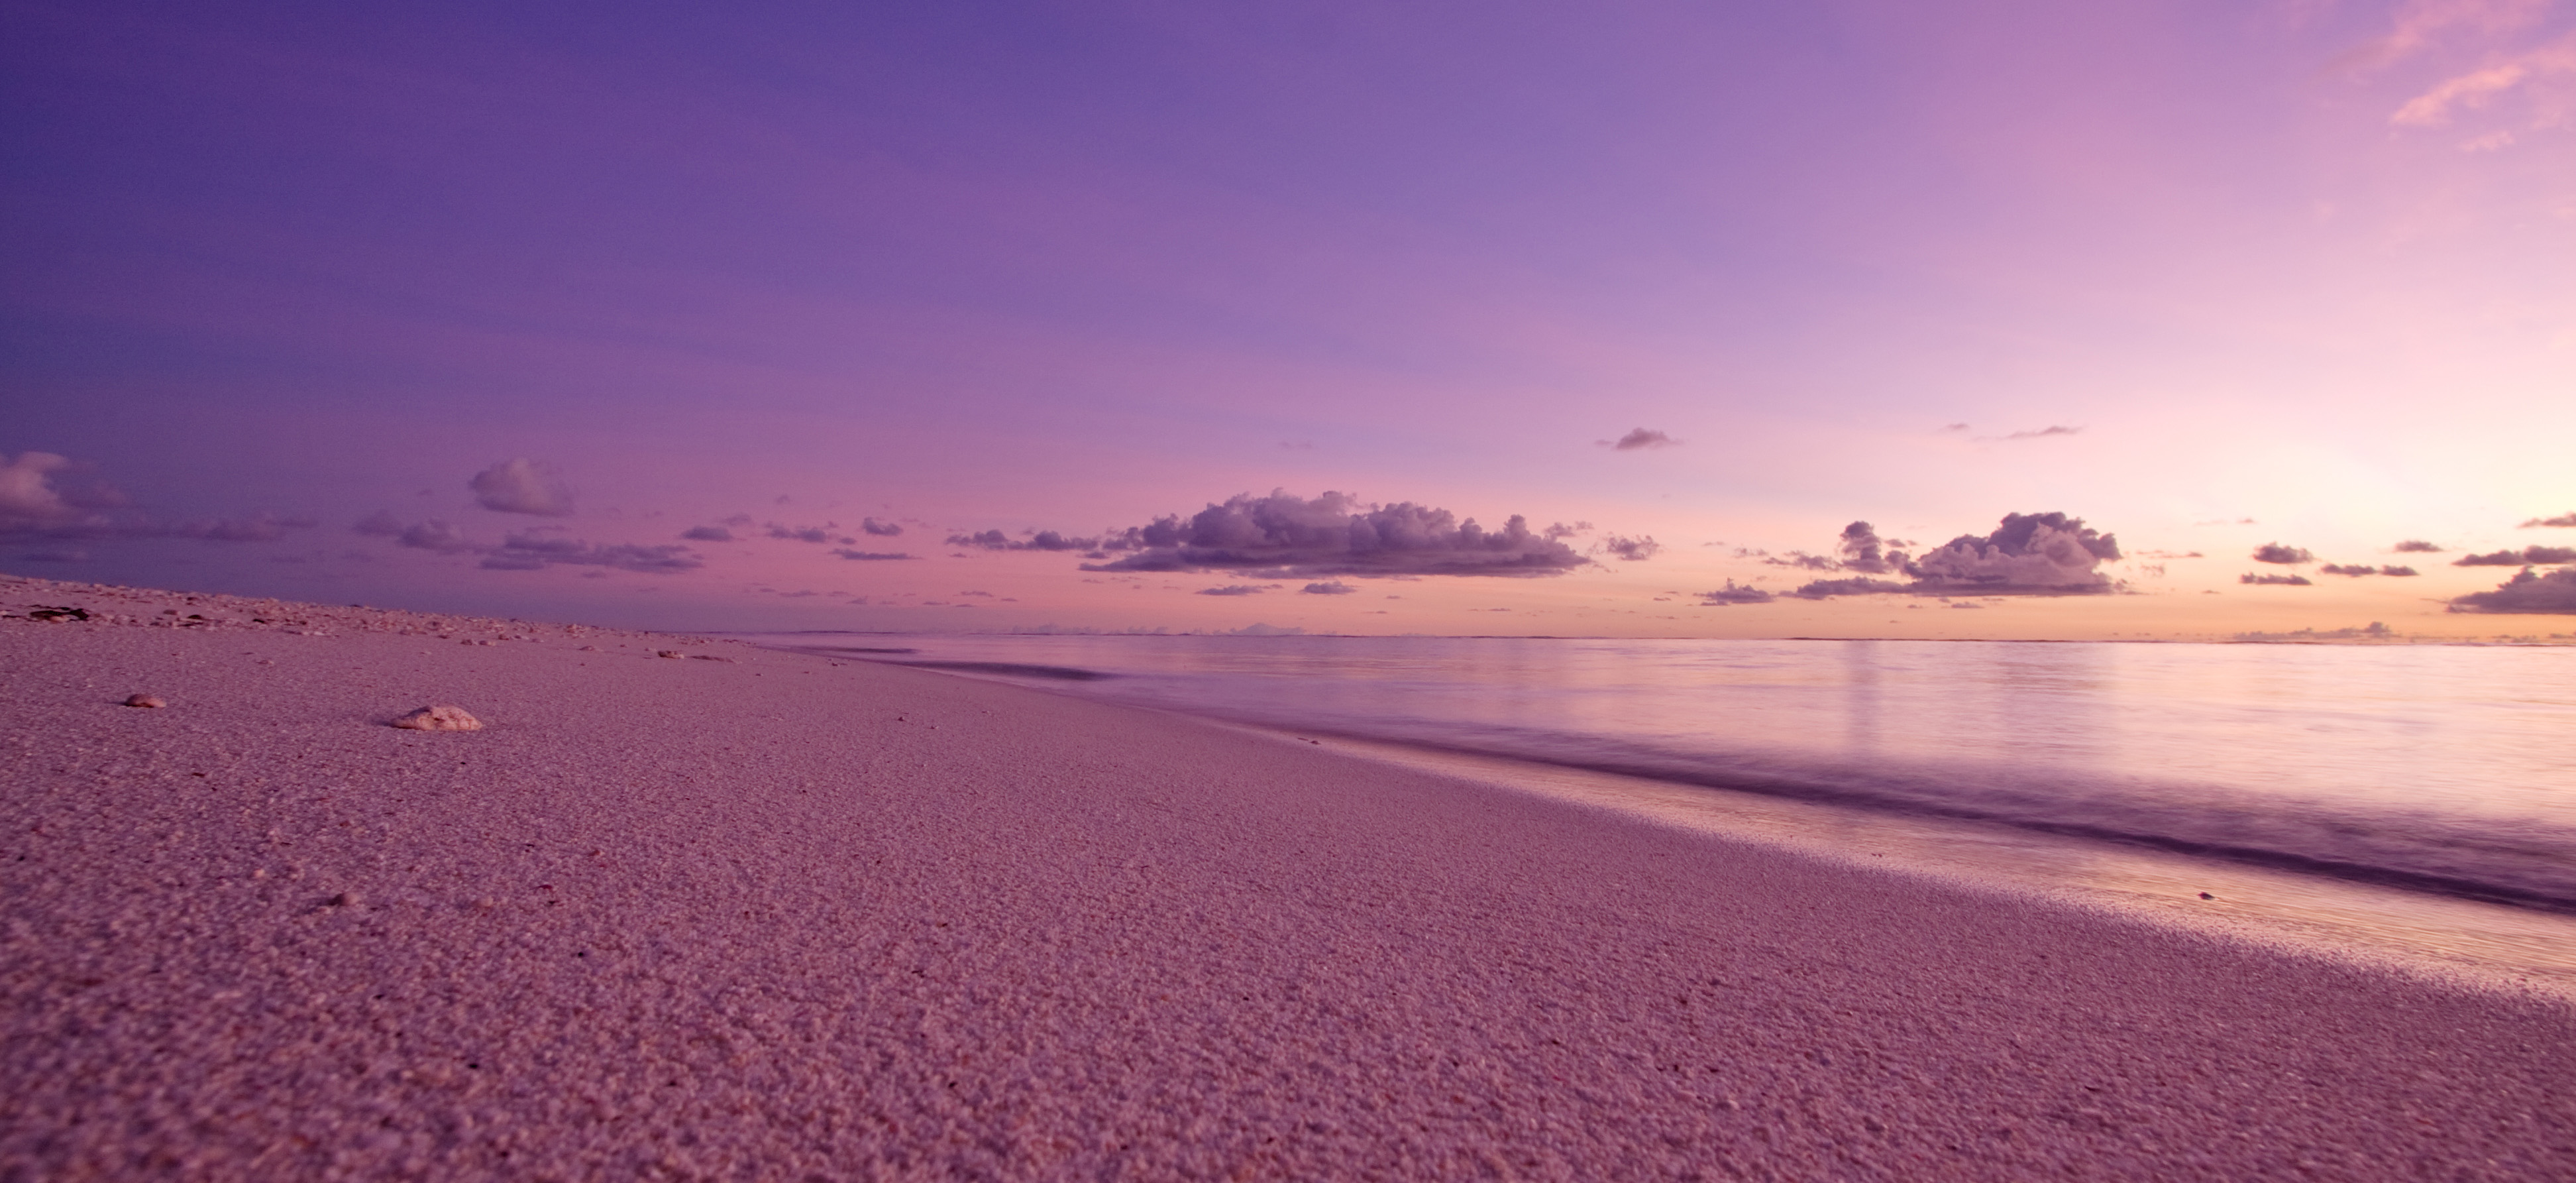 stunning places to watch the sunset in seychelles - west beach bird island